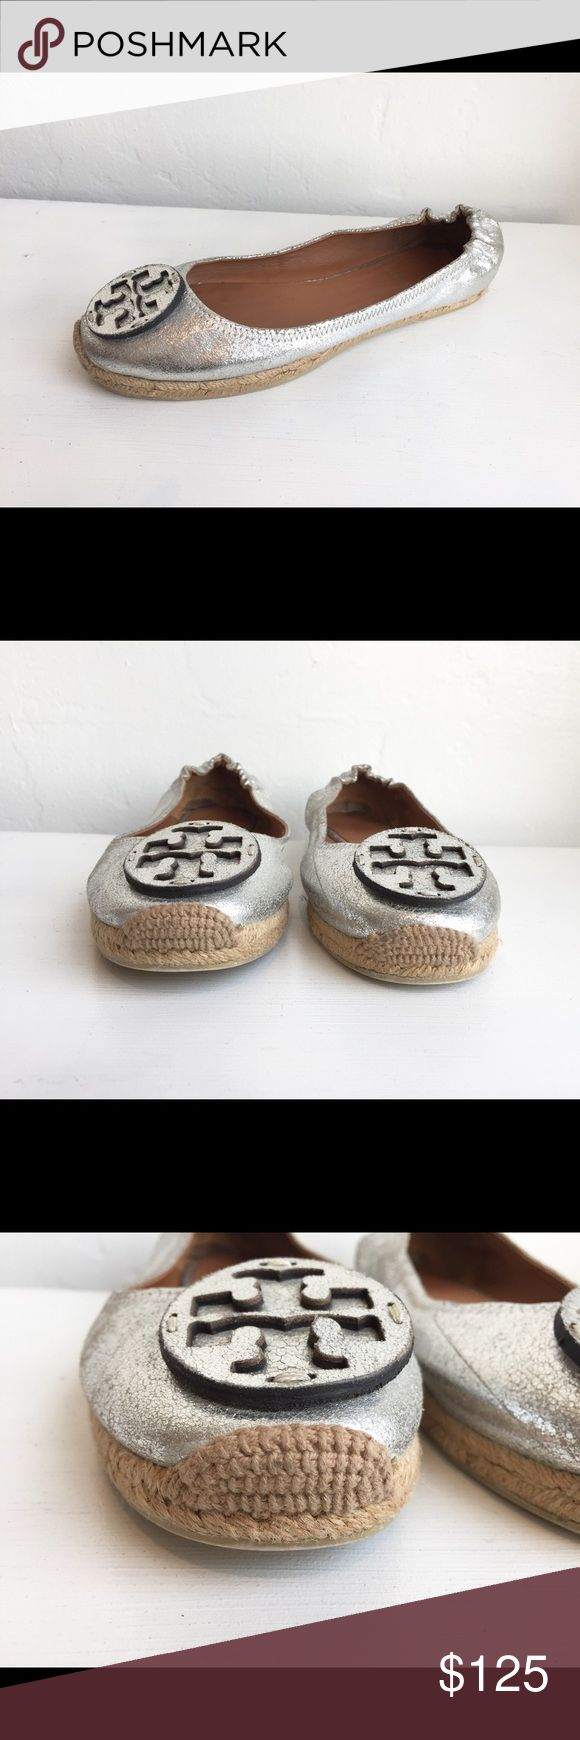 "TORY BURCH Silver Espadrilles Flats size 8 M TORY BURCH Silver Metallic Espadrille Flats size 8   Leather upper  Leather lining Padded insole Rubber sole Leather medallion Espadrille heel 1/2"" platform height Imported  Very lightly used! Tory Burch Shoes Flats & Loafers"